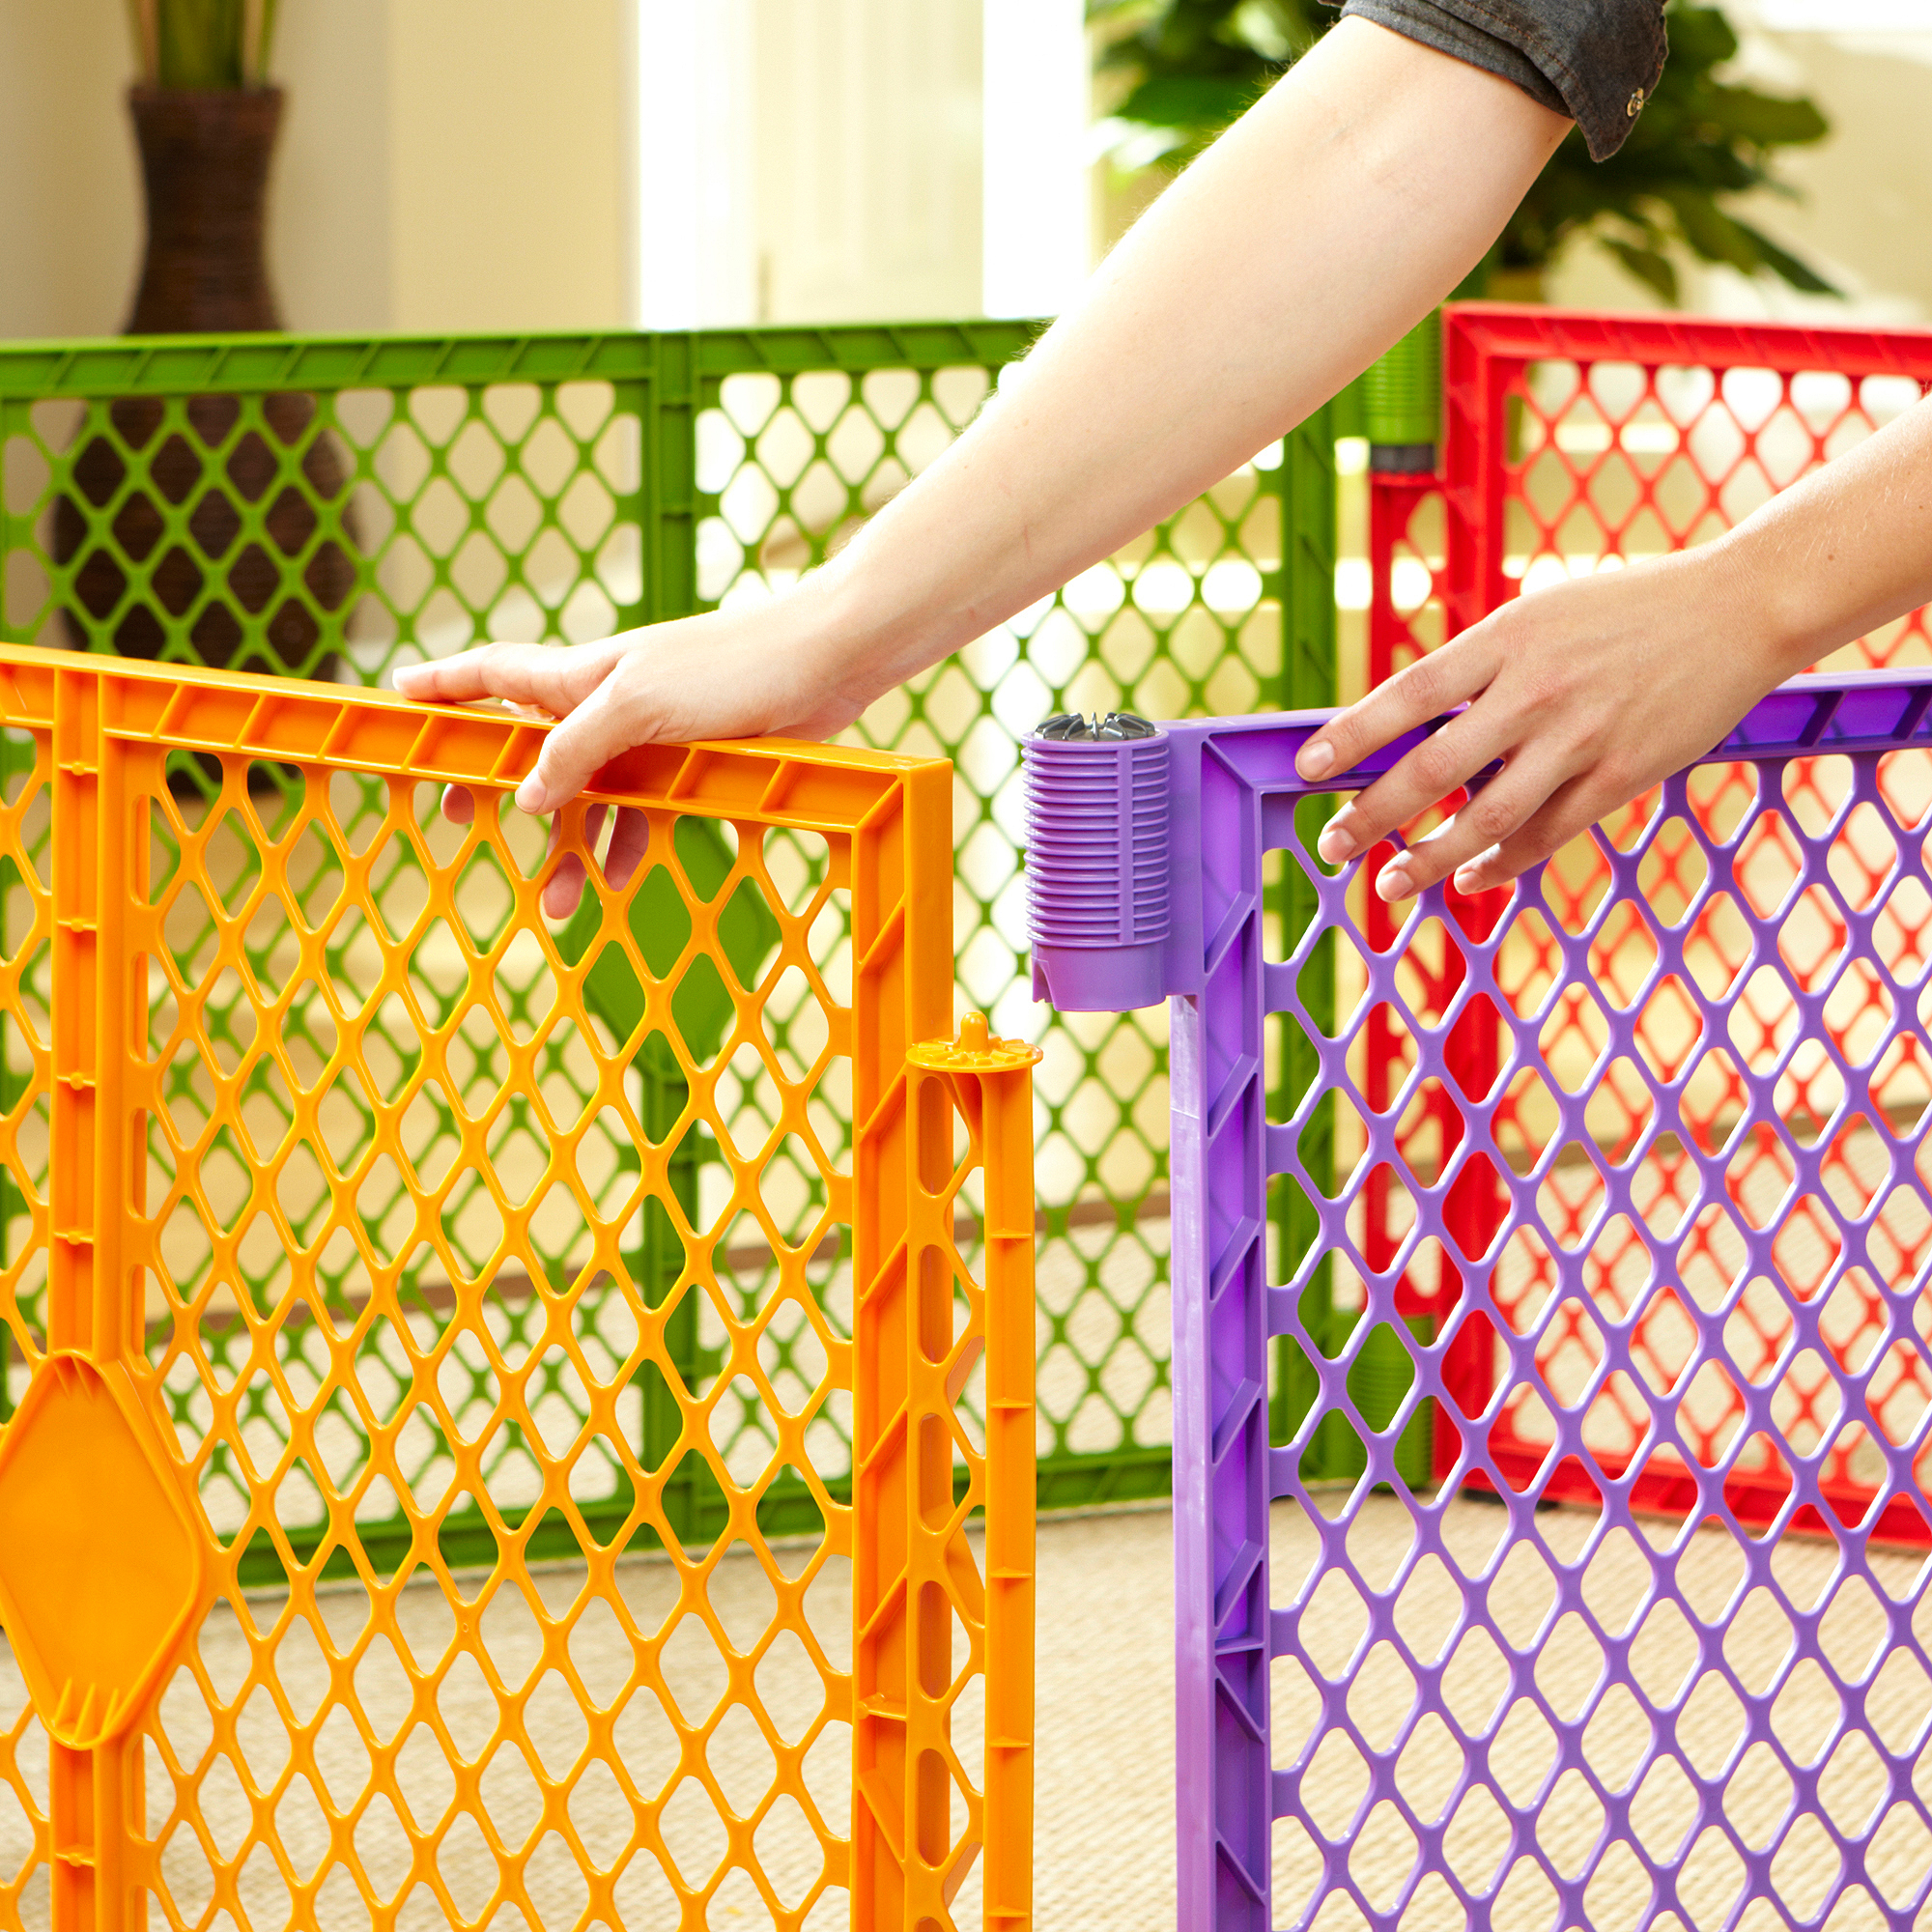 North States Superyard | North States Superyard Xt Portable Playard | Superyard Classic Play Yard